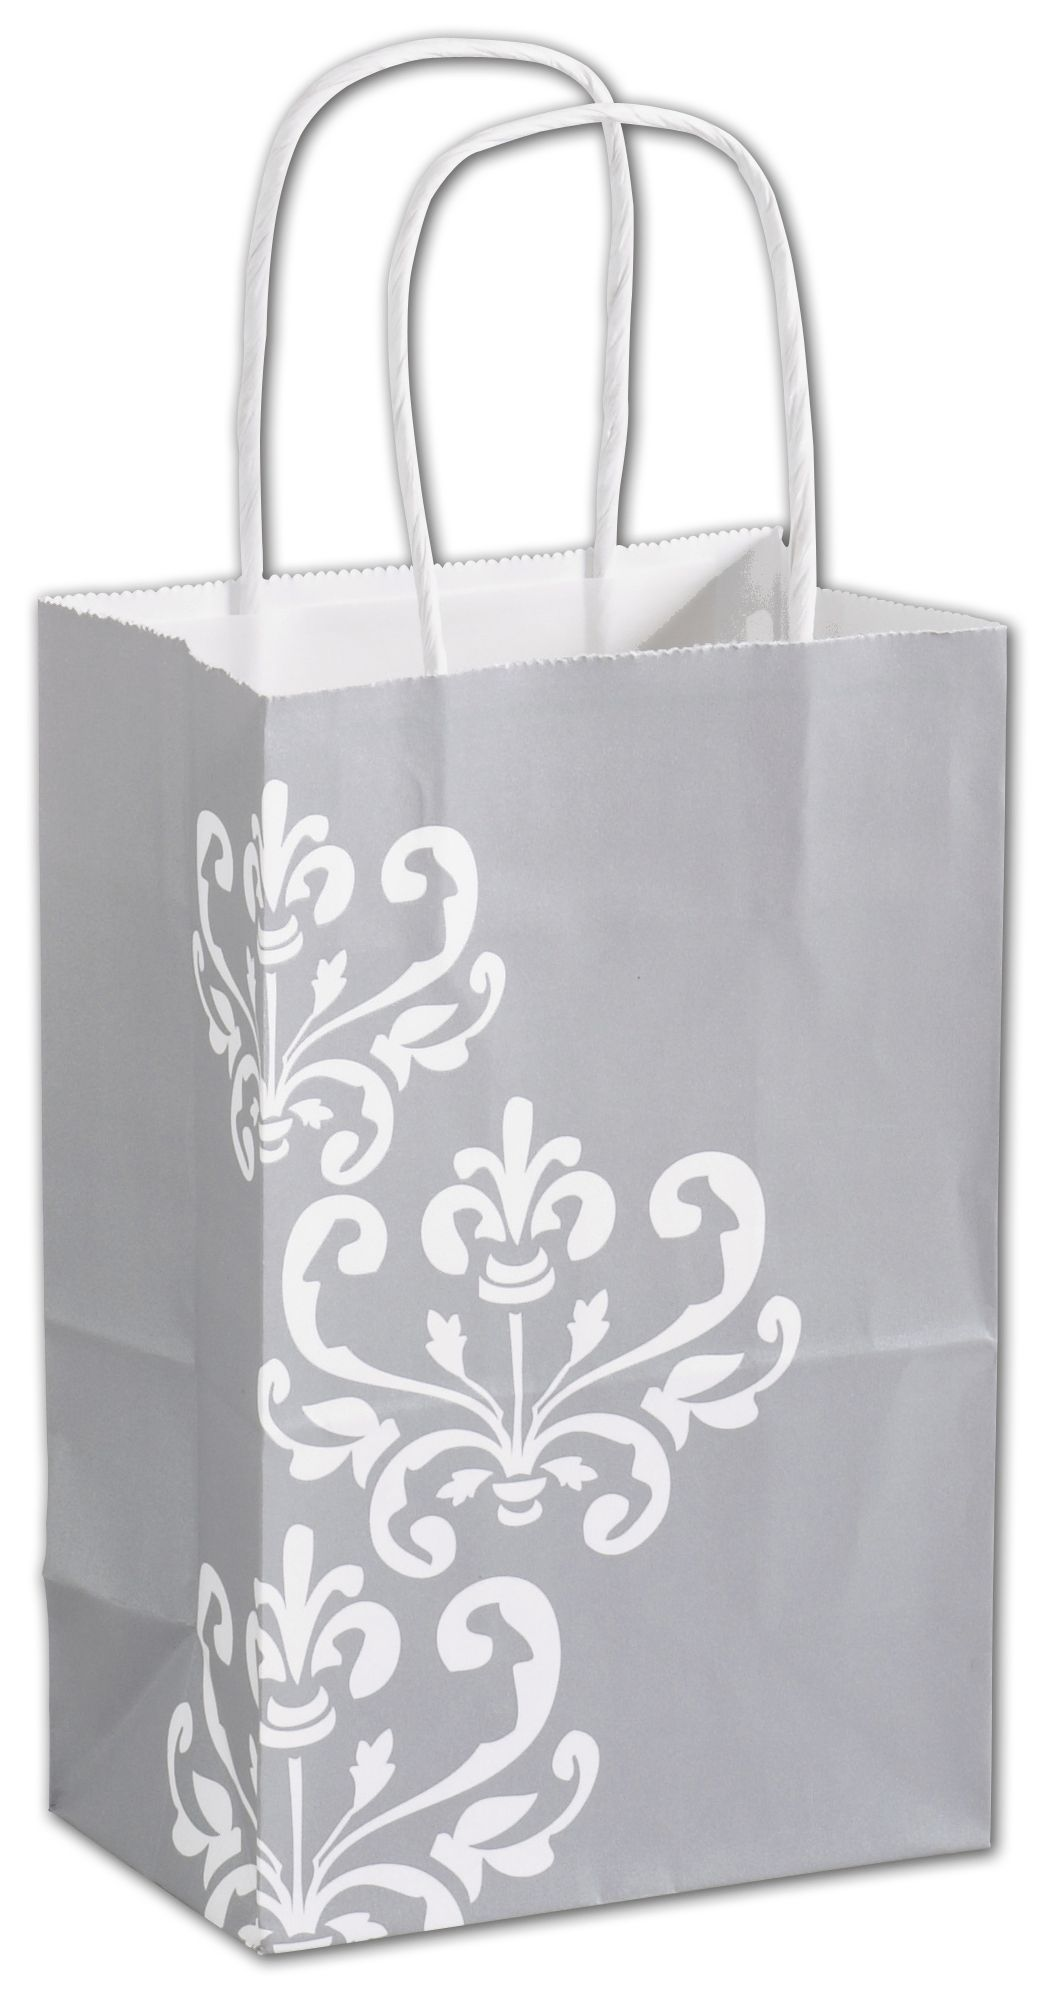 Wrap your items in style with these attractive and sturdy grey paper shopping bags with a white accent.